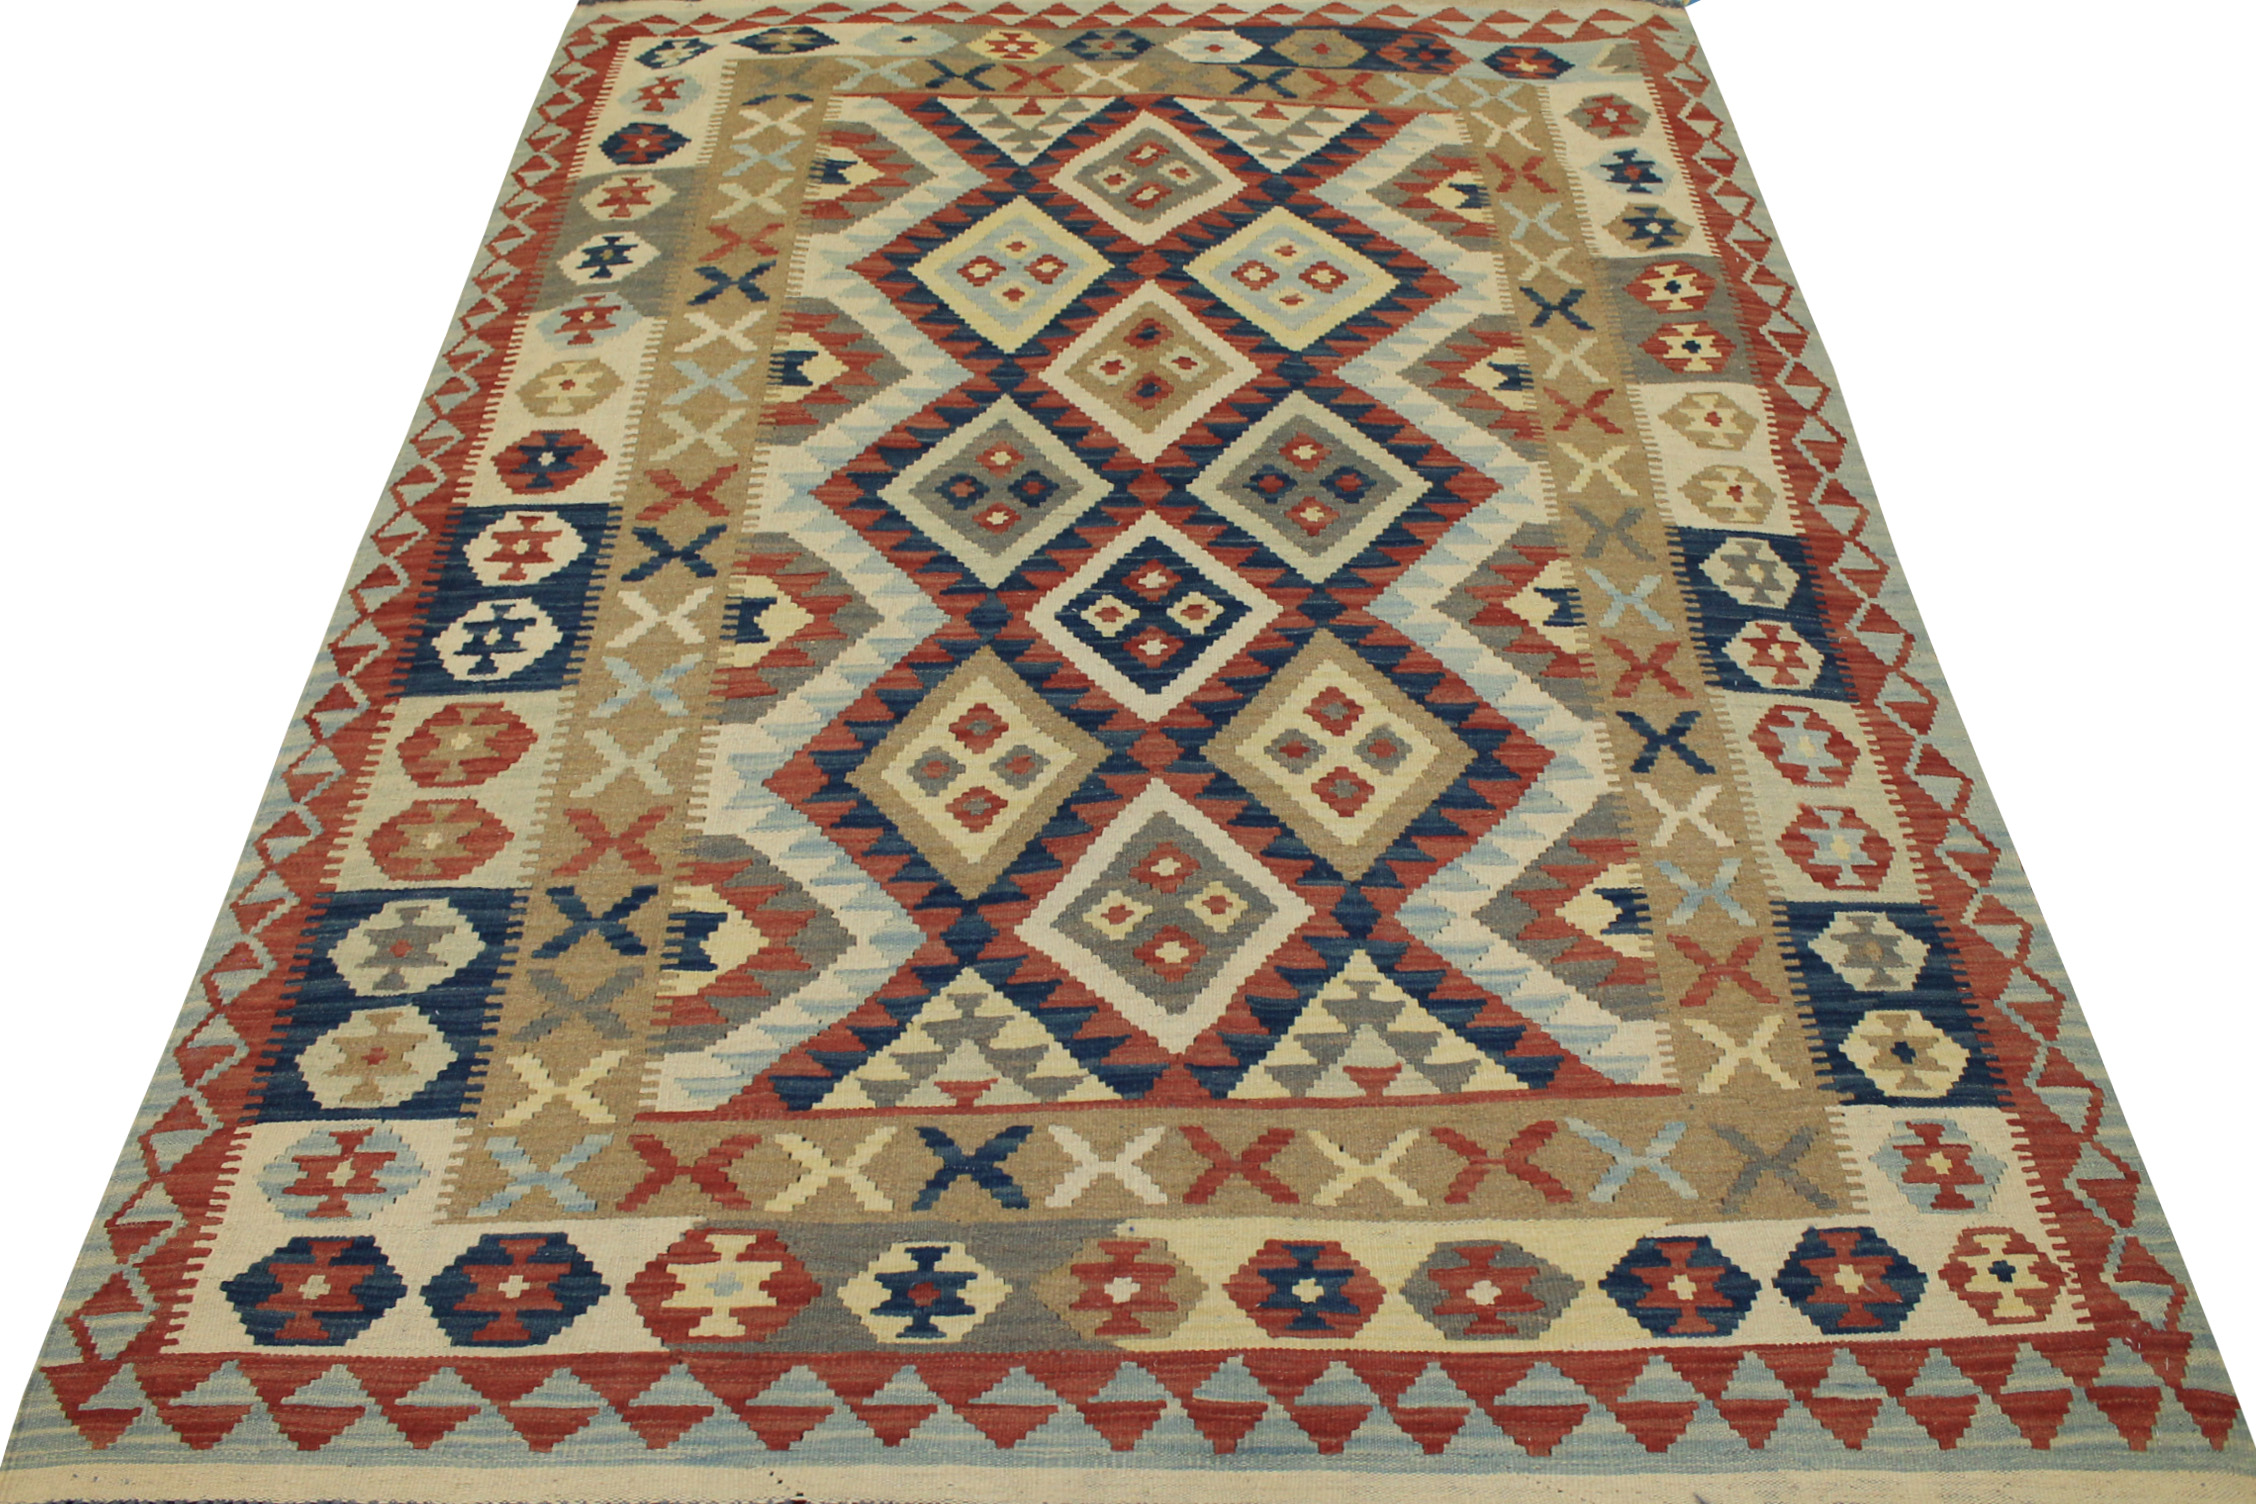 5x7/8 Flat Weave Hand Knotted Wool Area Rug - MR13324